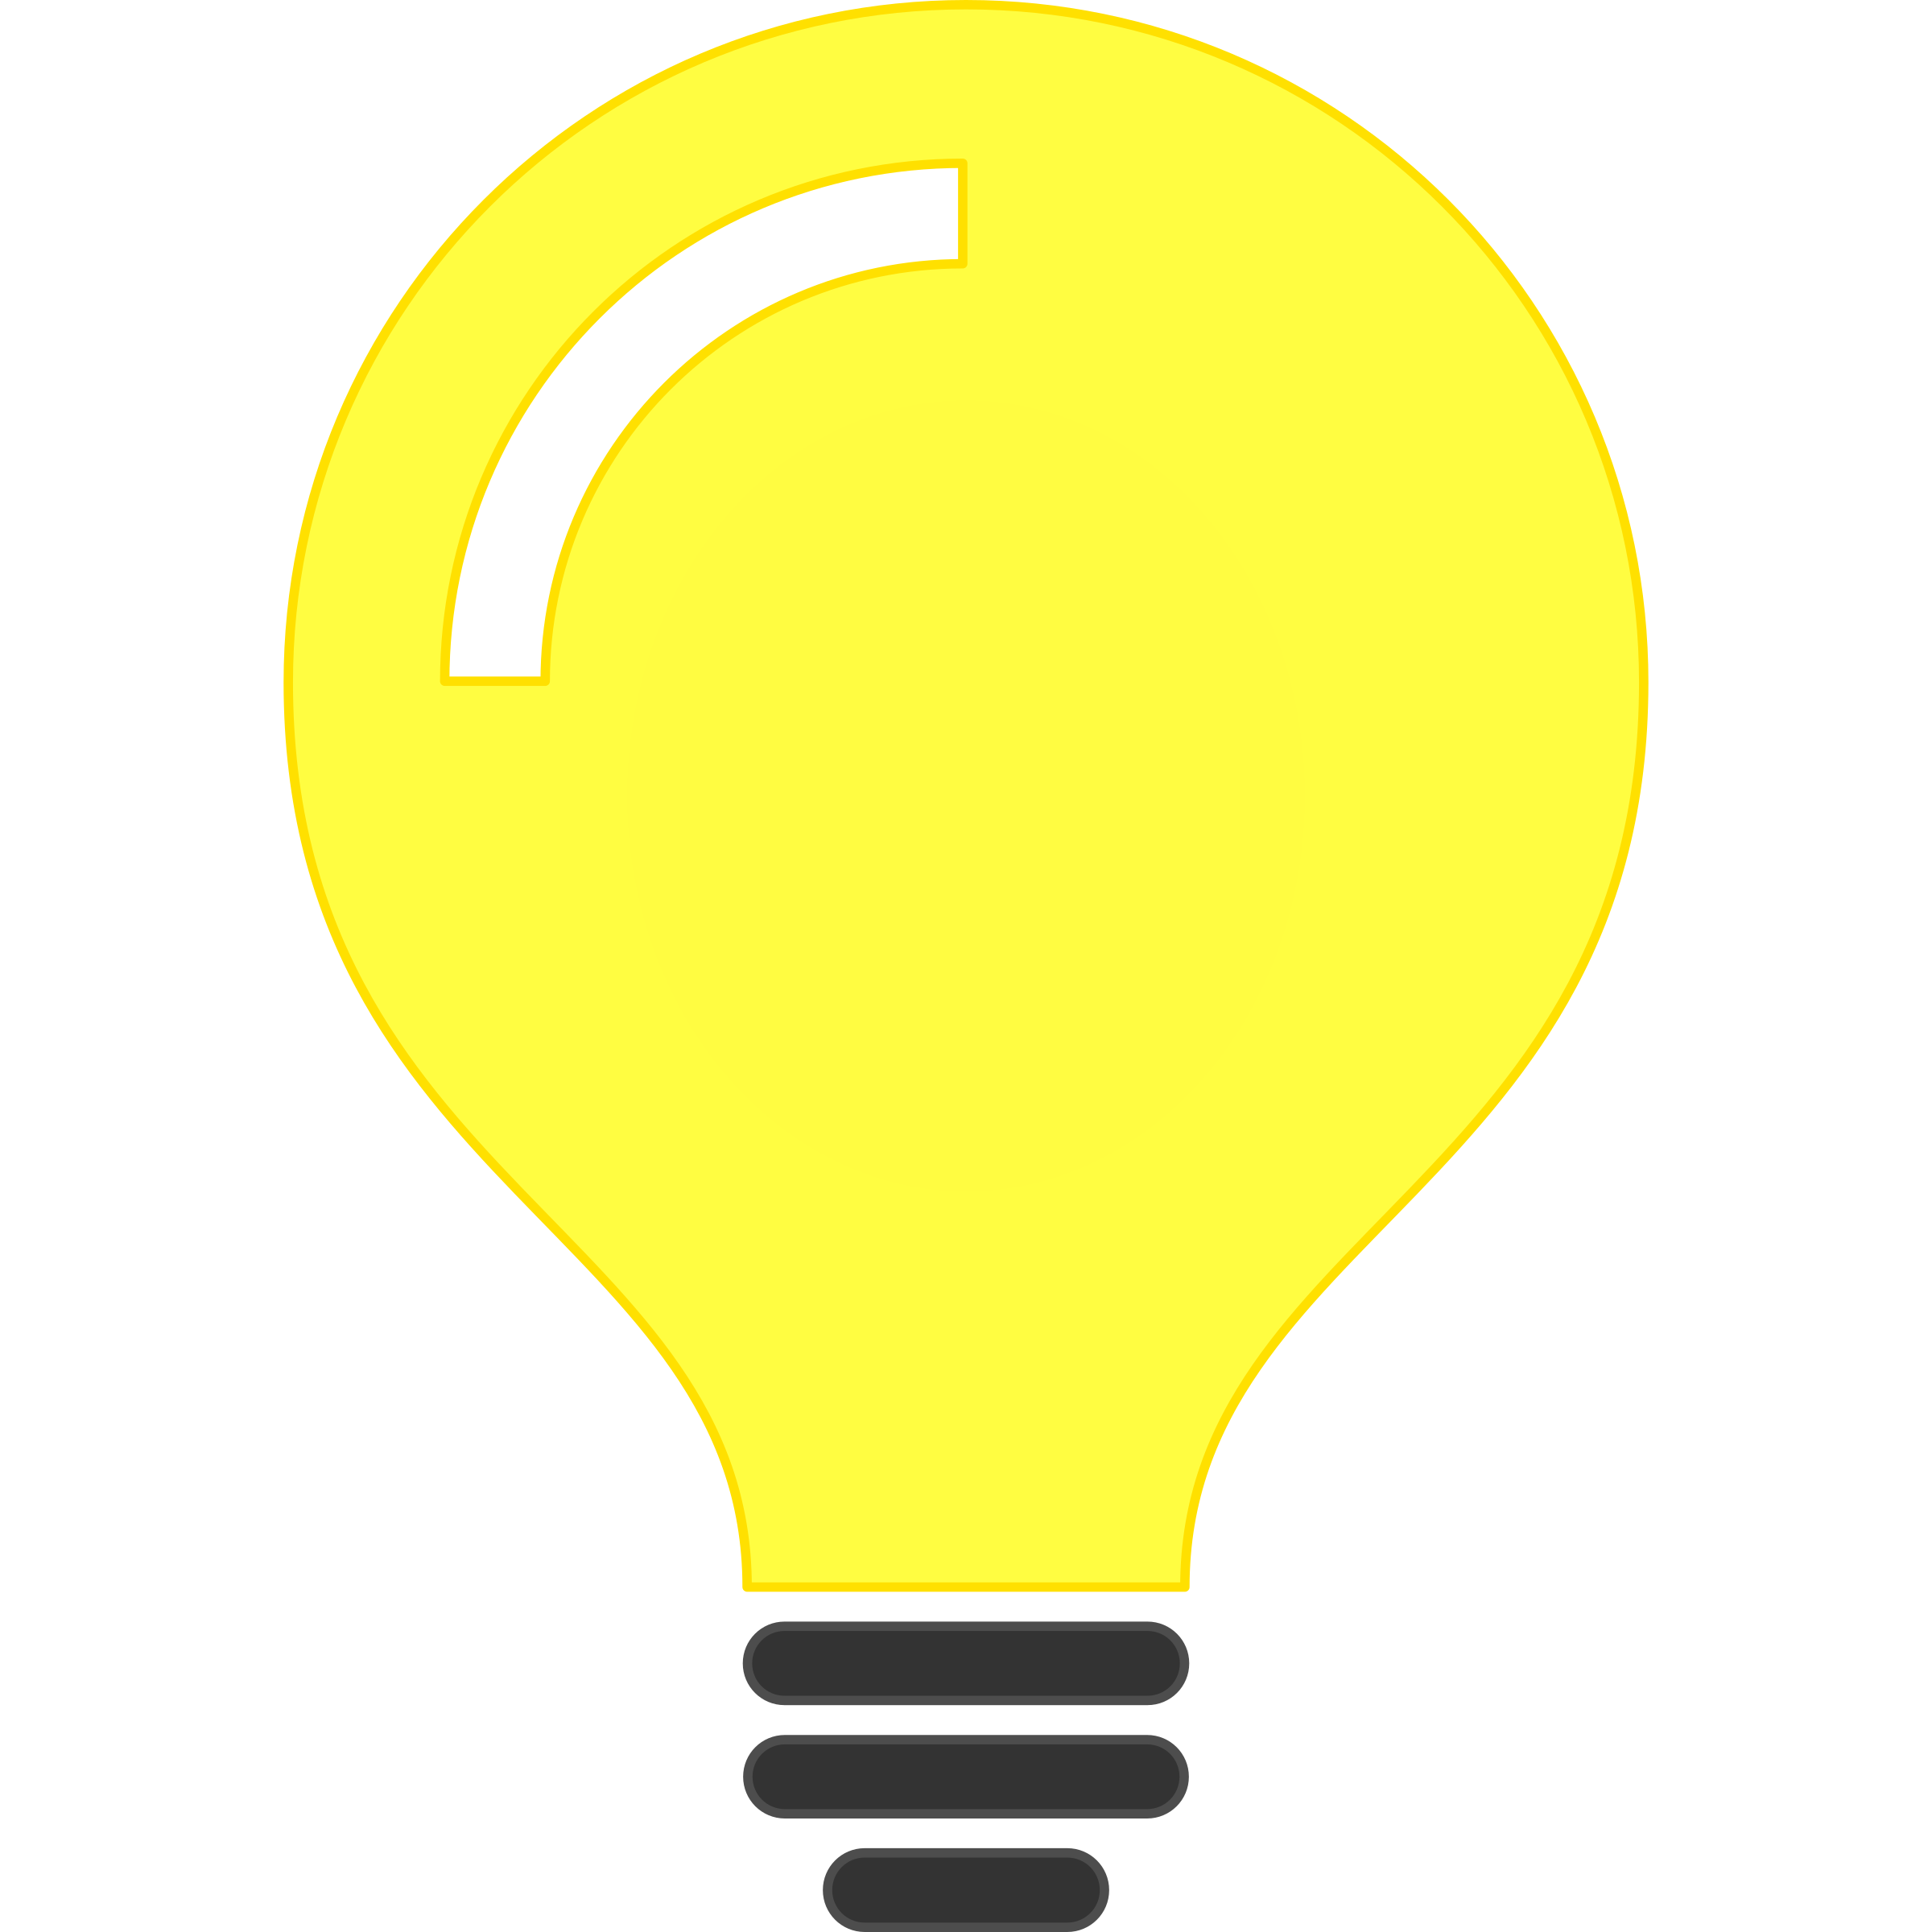 clip art royalty free stock Bright light bulb png. Lightbulb clipart brilliant idea.